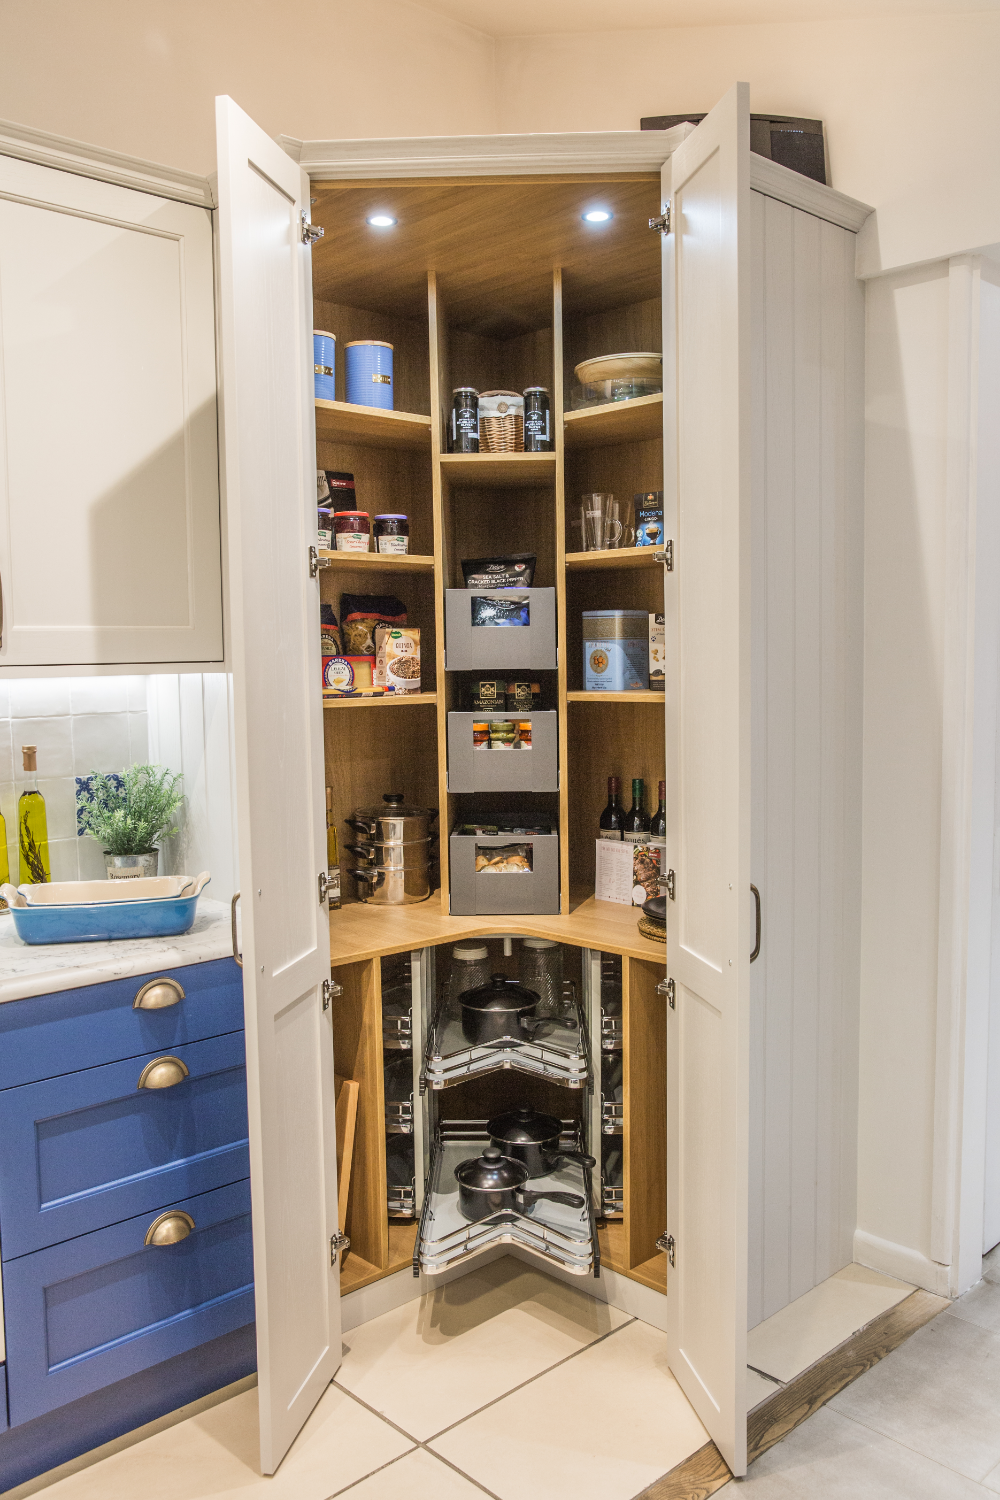 Brilliant kitchen storage ideas